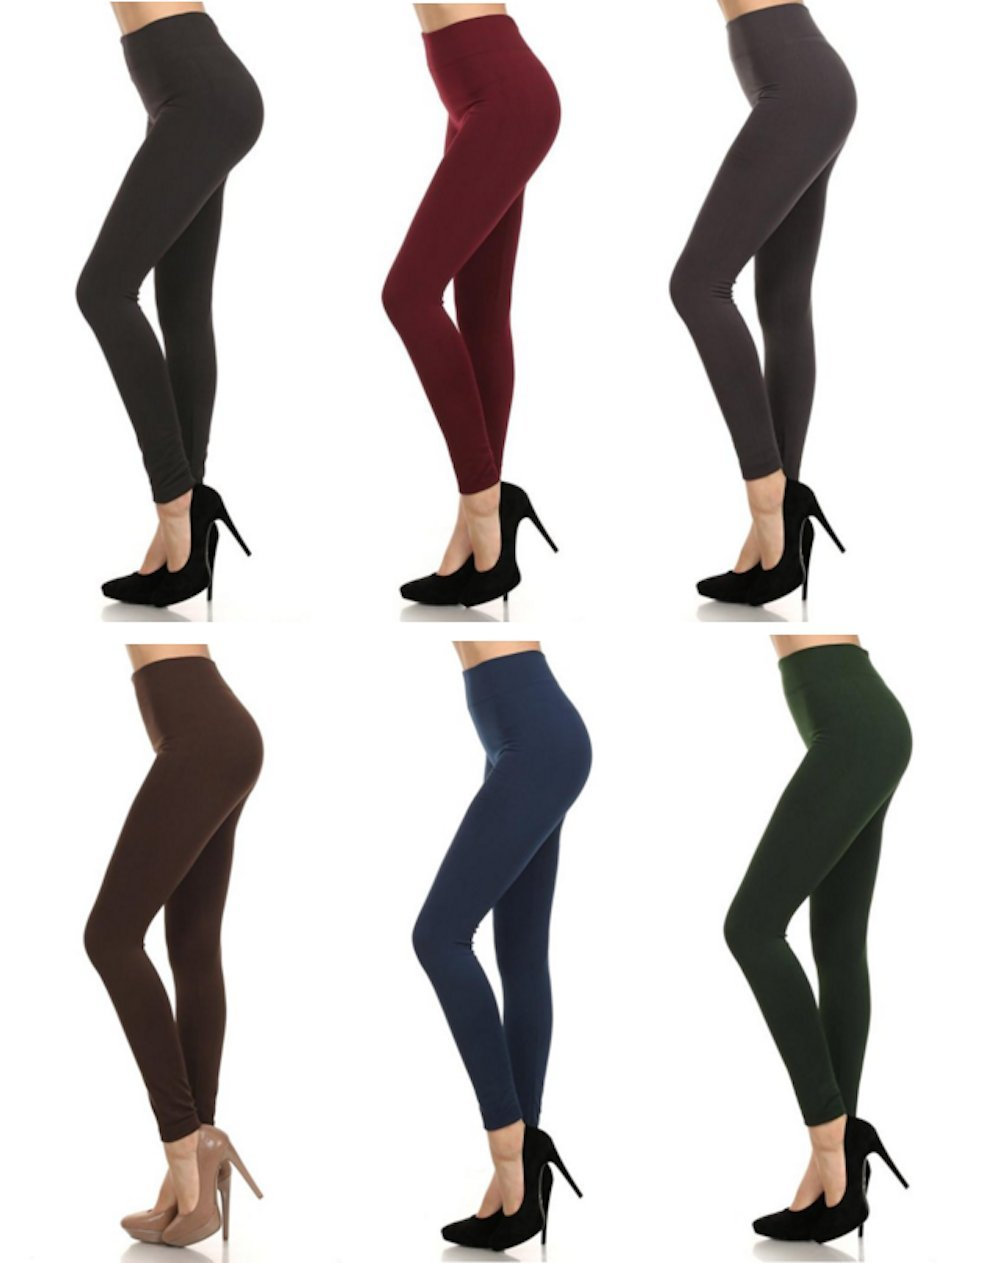 MOPAS 6-pack: Seamless Fleece Lined Leggings - Stretchy Multi Colors.